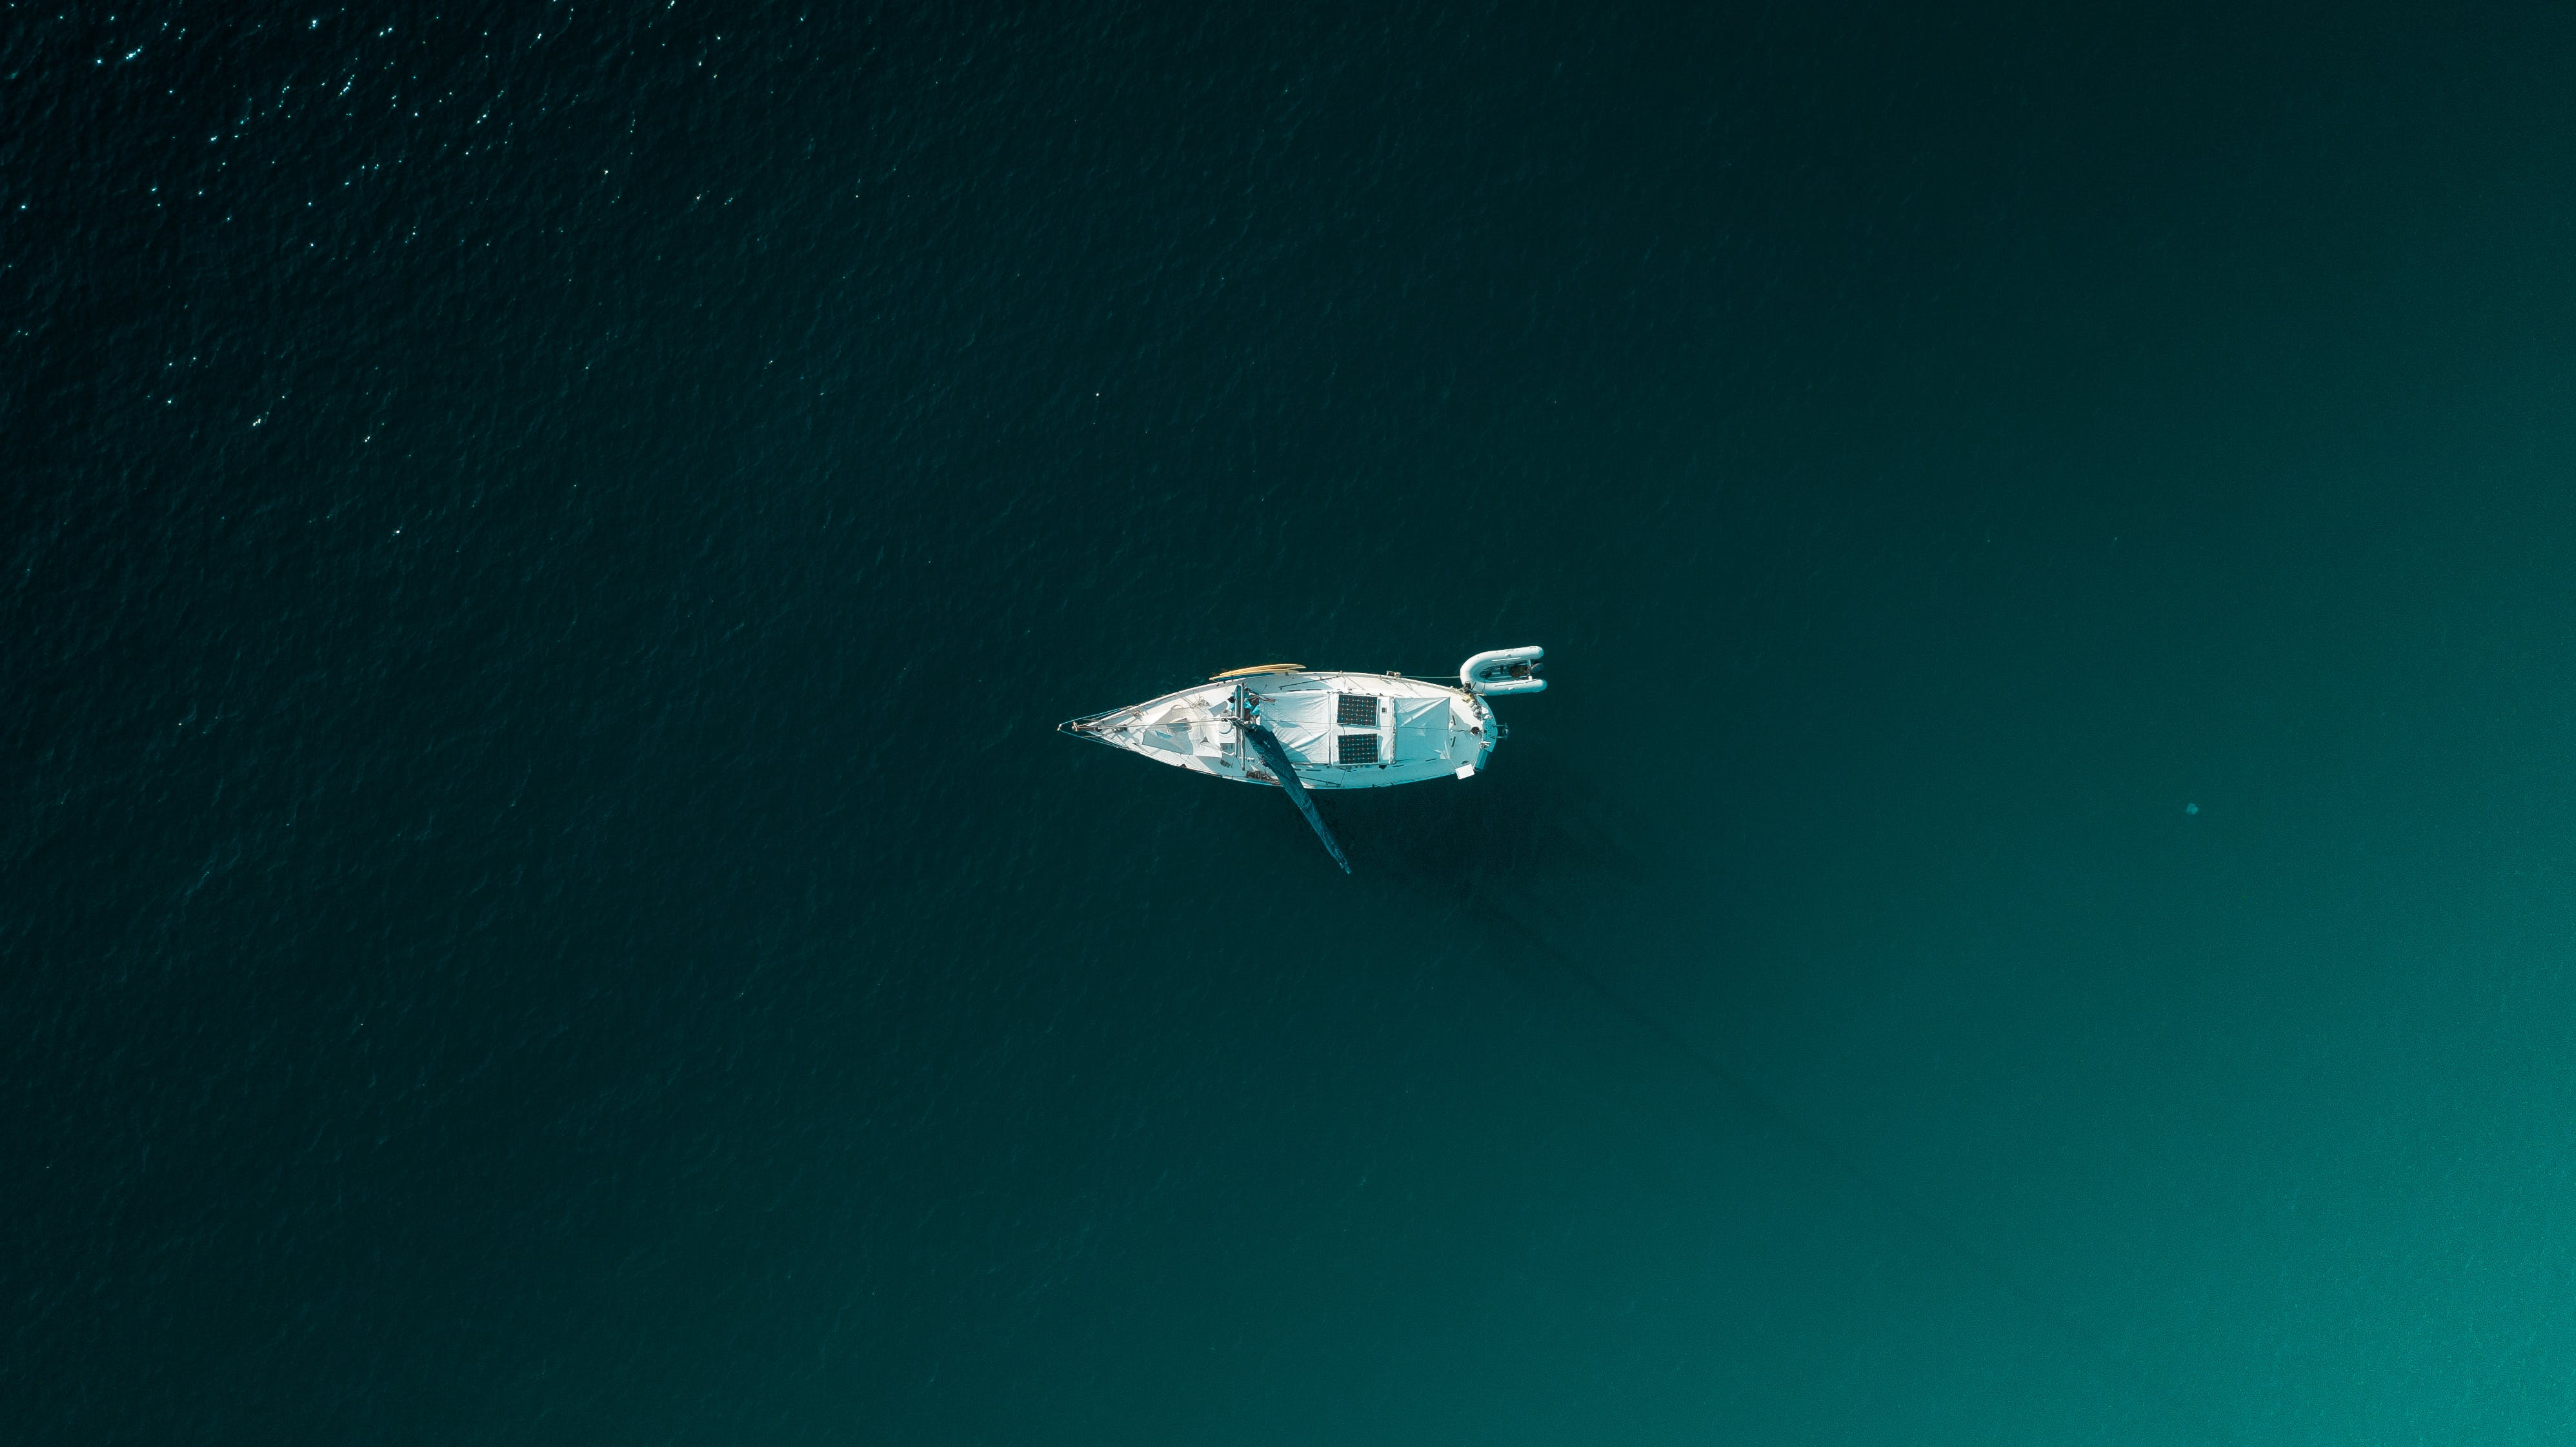 White Boat On Green Water